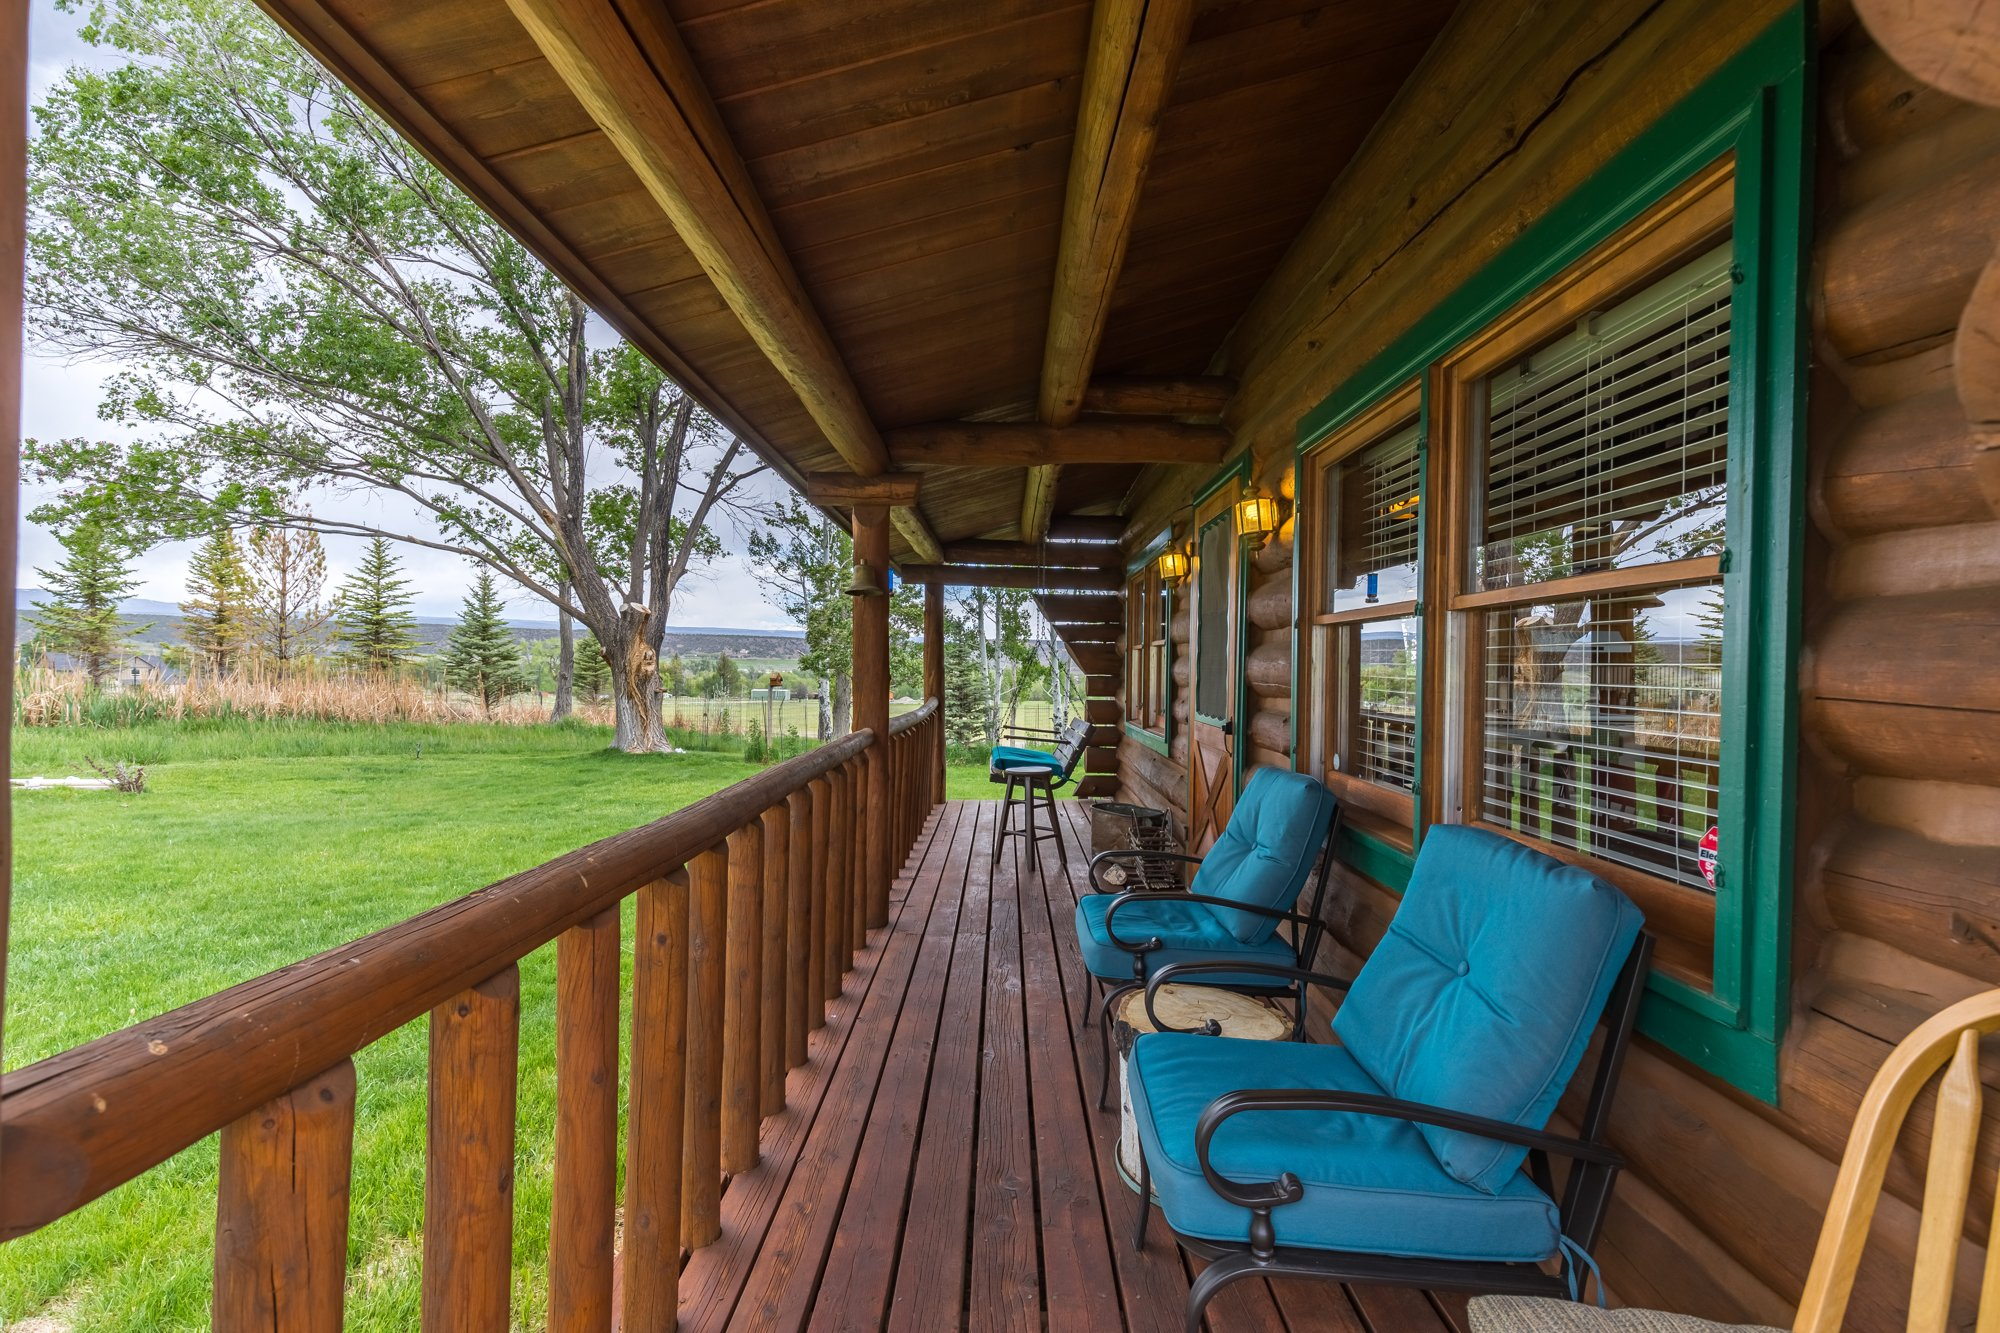 Covered Porch - 21770 Uncompahgre Rd Montrose, CO 81403 - Atha Team Country Real Estate